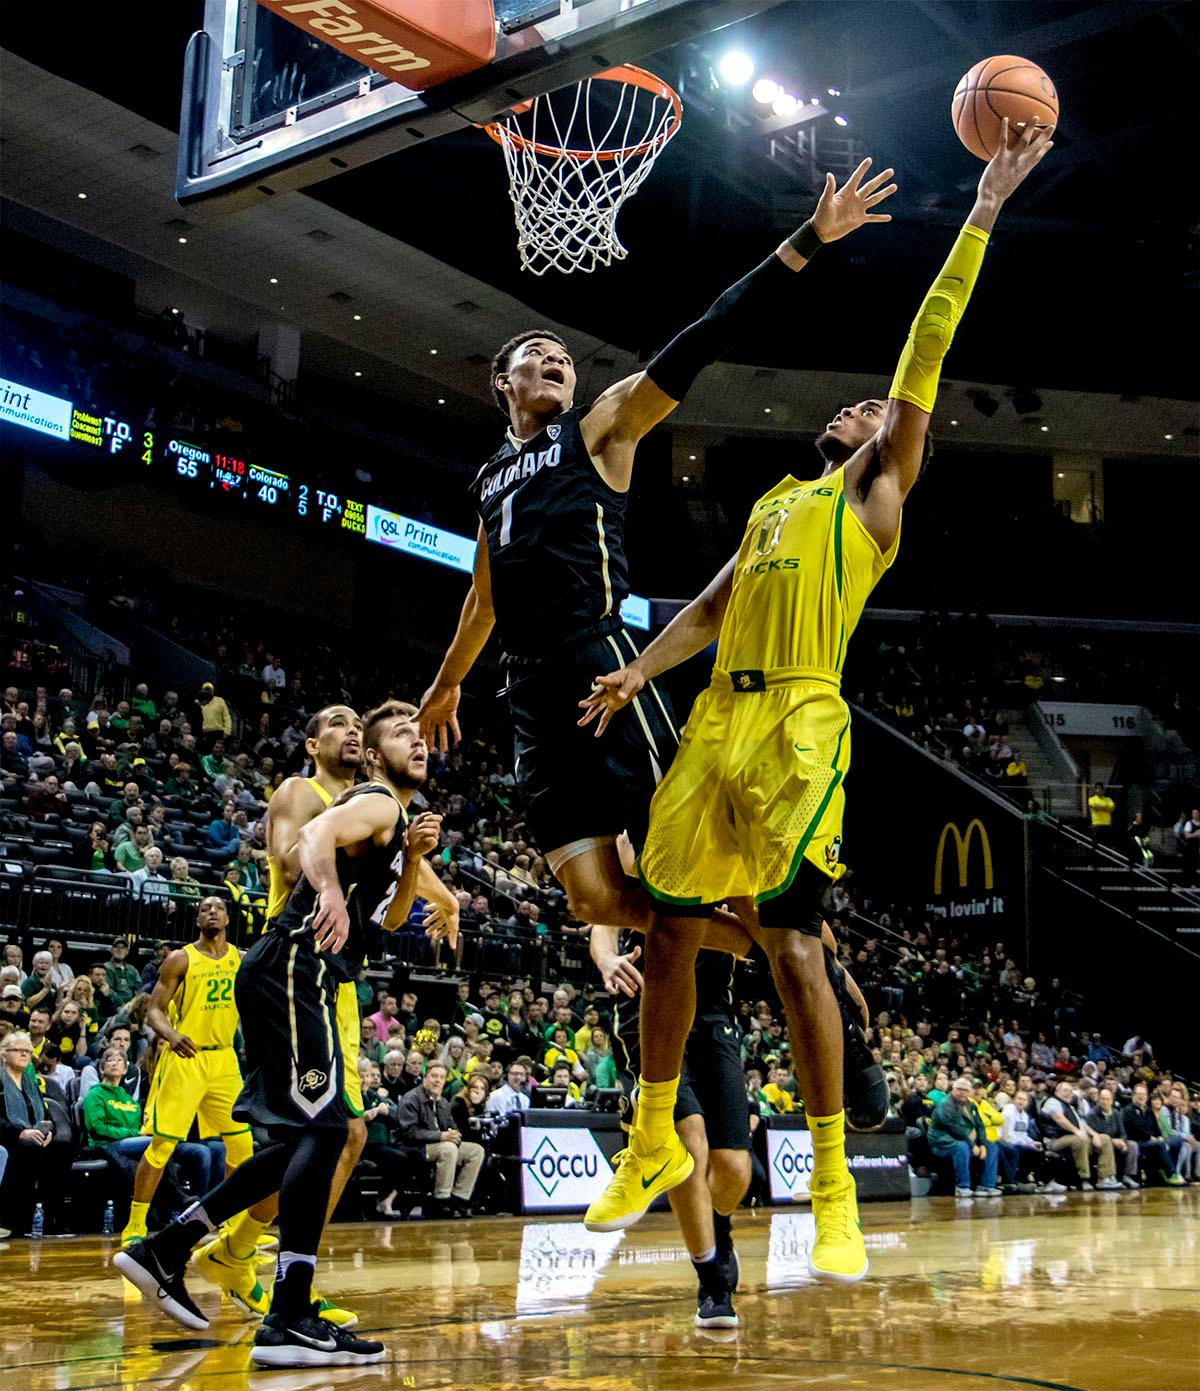 The Duck's Troy Brown Jr. (#0) stretches to toss the ball into the basket. The Oregon Ducks defeated the Colorado Buffaloes 77-62 at Matthew Knight Arena on Sunday. Troy Brown had a season-high score of 21 points, Elijah Brown added 17, while Kenny Wooten and Payton Pritchard added 13 and 12 respectively. Oregon is now 1-1 in conference play. The Ducks next face off against the Oregon State Beavers in Corvallis on Friday, January 5th. Photo by August Frank, Oregon News Lab